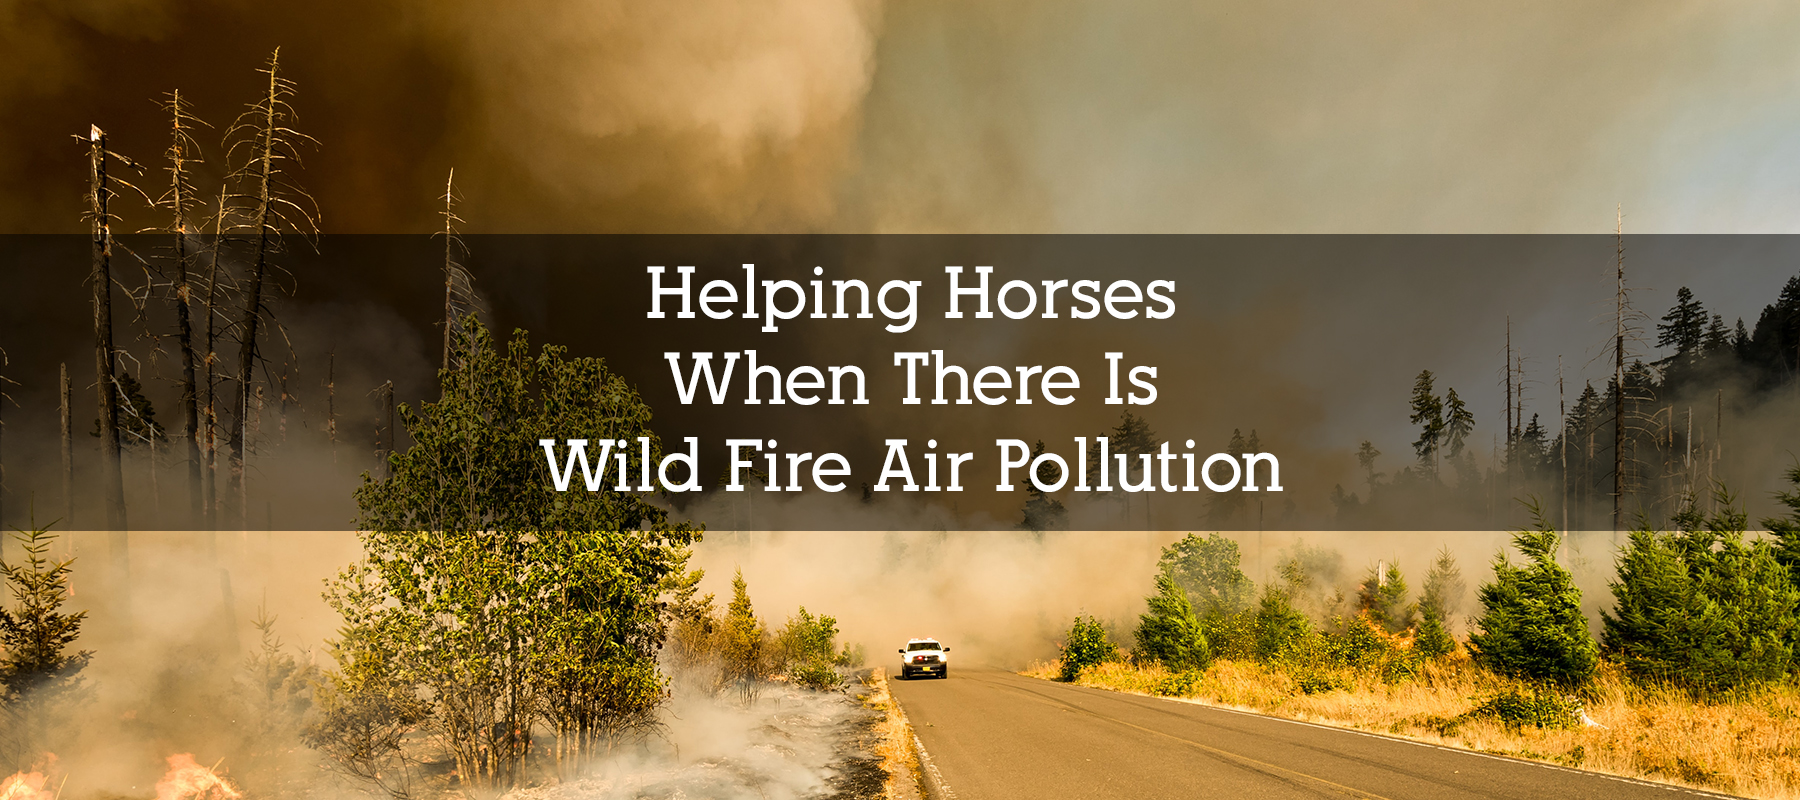 Helping Horsees with Wild Fire Air Pollution and Smoke